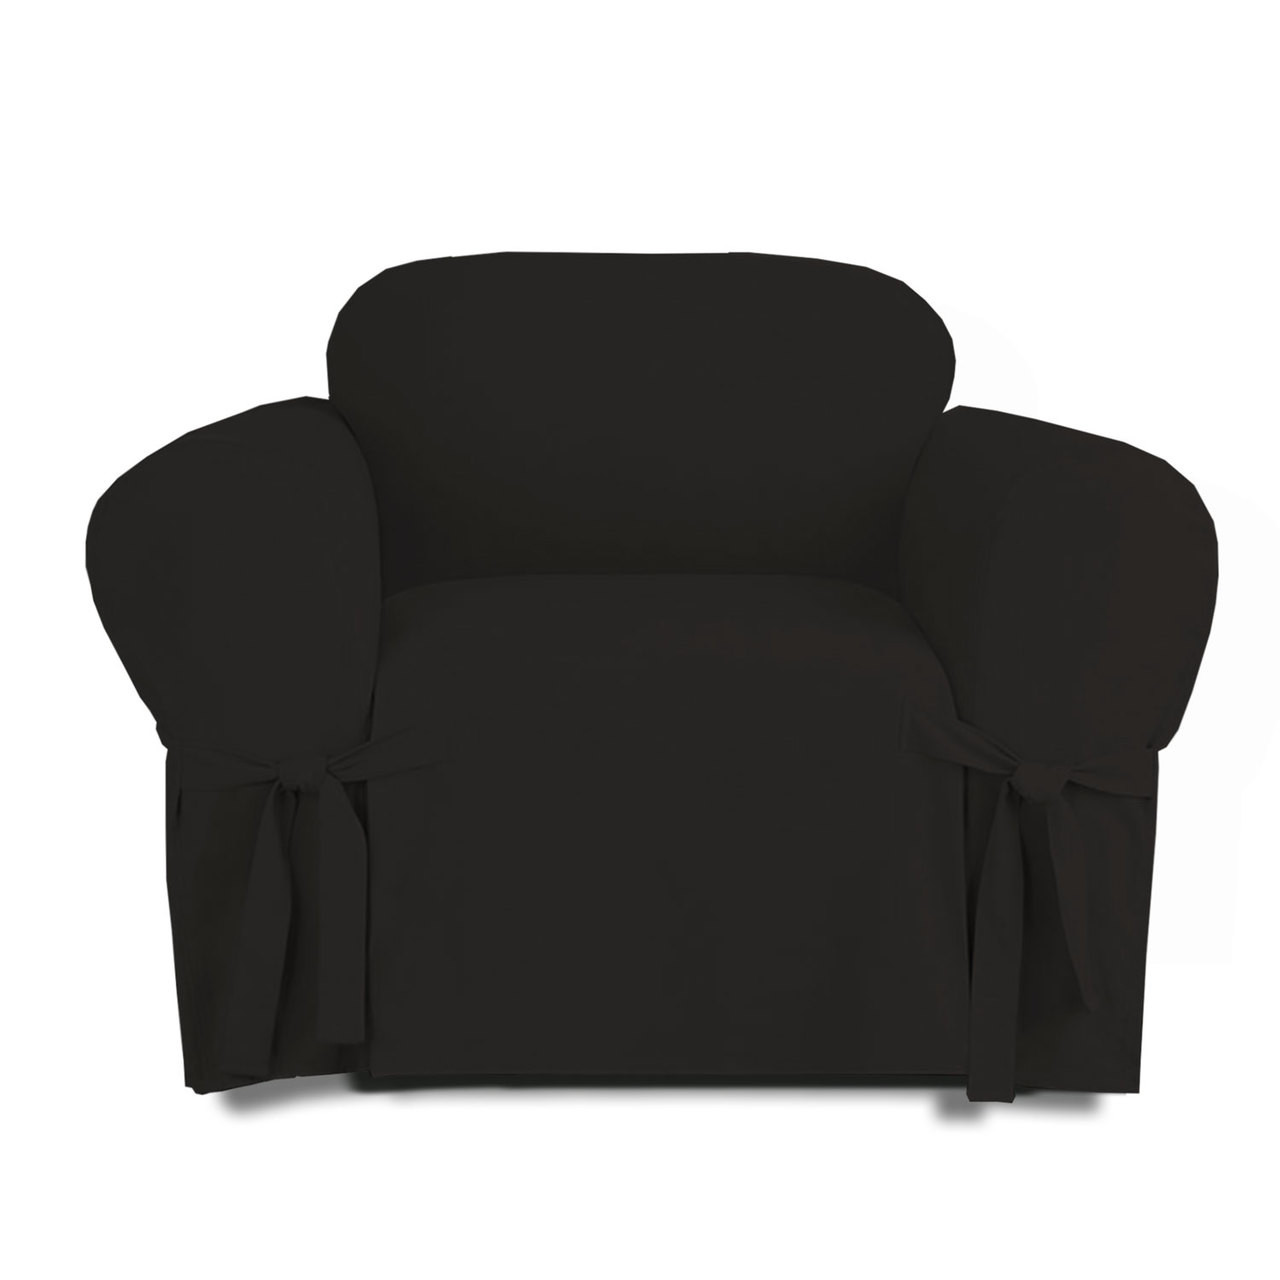 Beau Linen Store Microsuede Slipcover, Furniture Protector Cover Chair Black